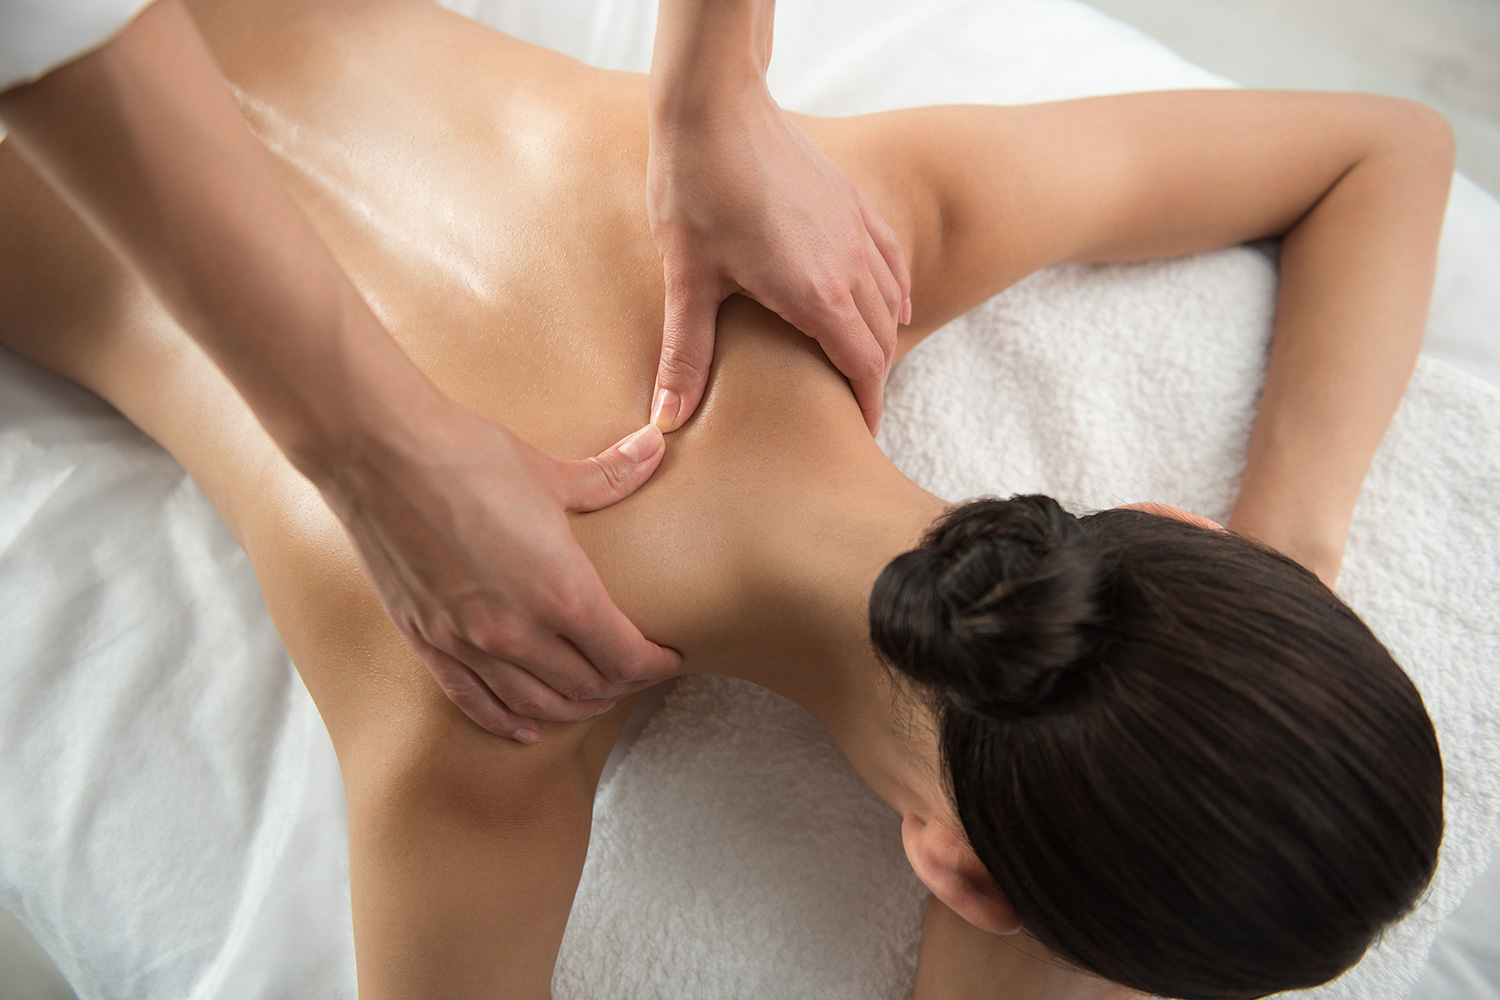 Supreme Hydration Experience Massage Therapy - Μασάζ